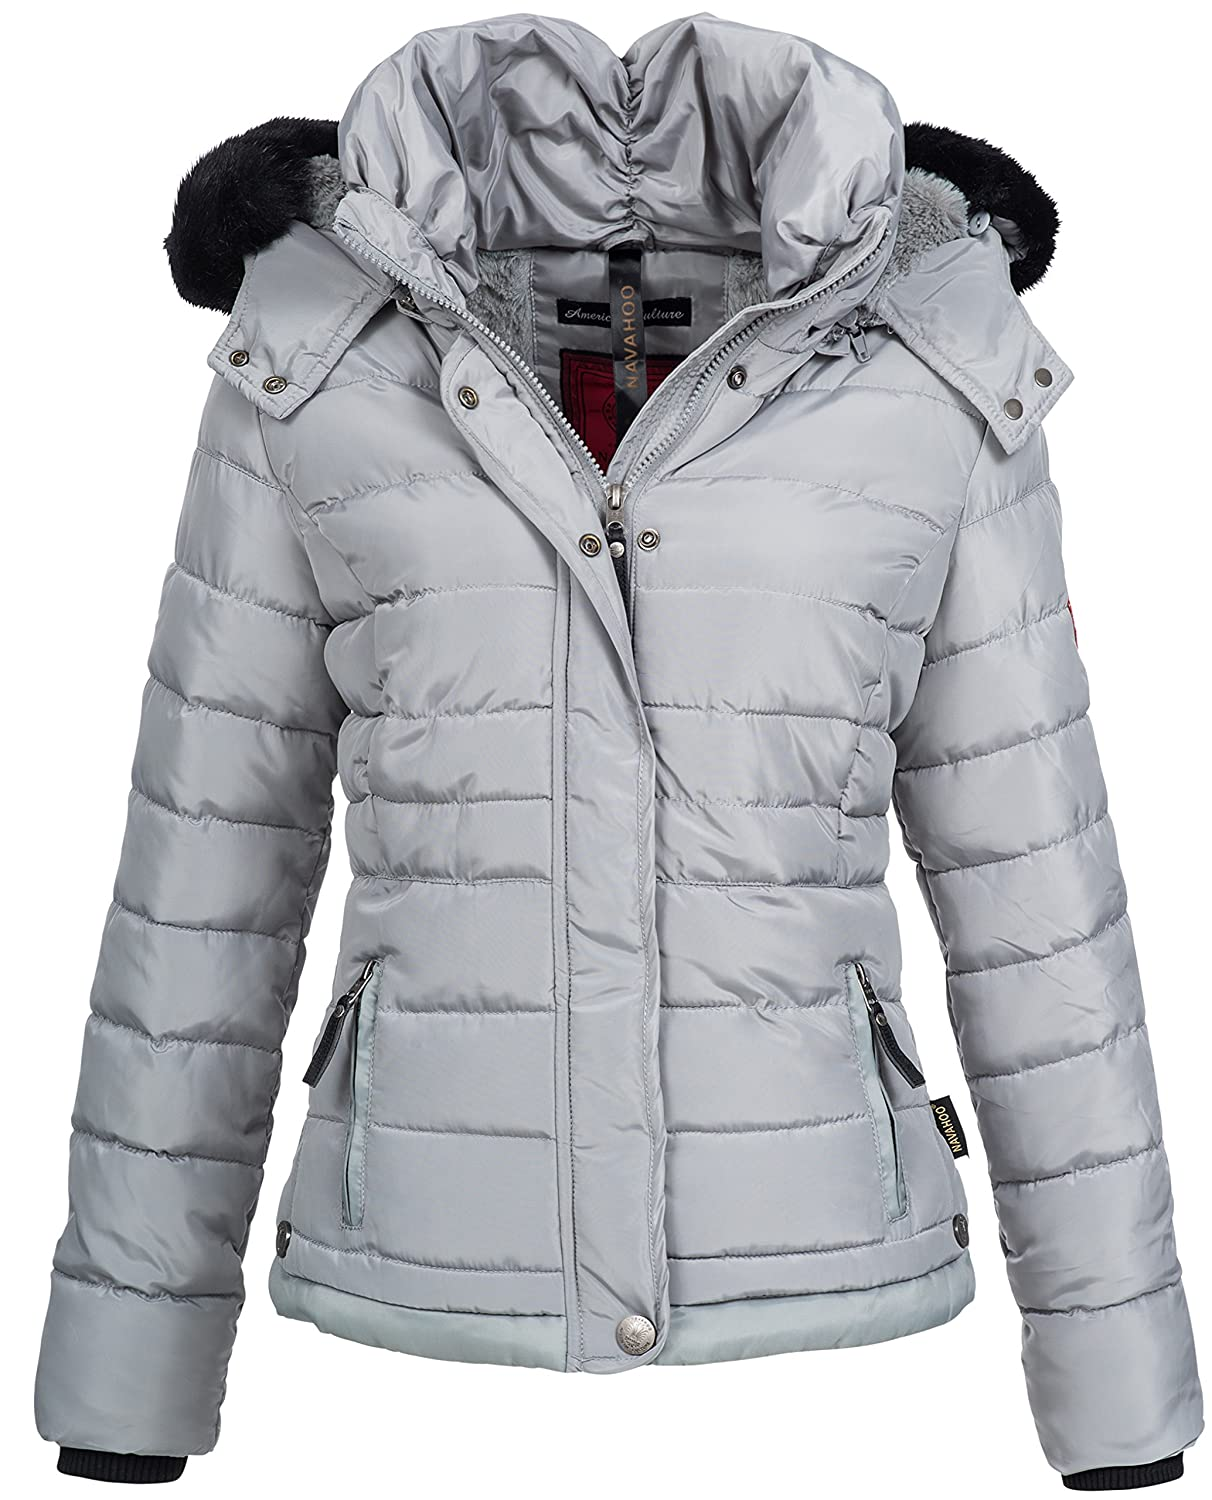 Elegante winterjacken fur damen